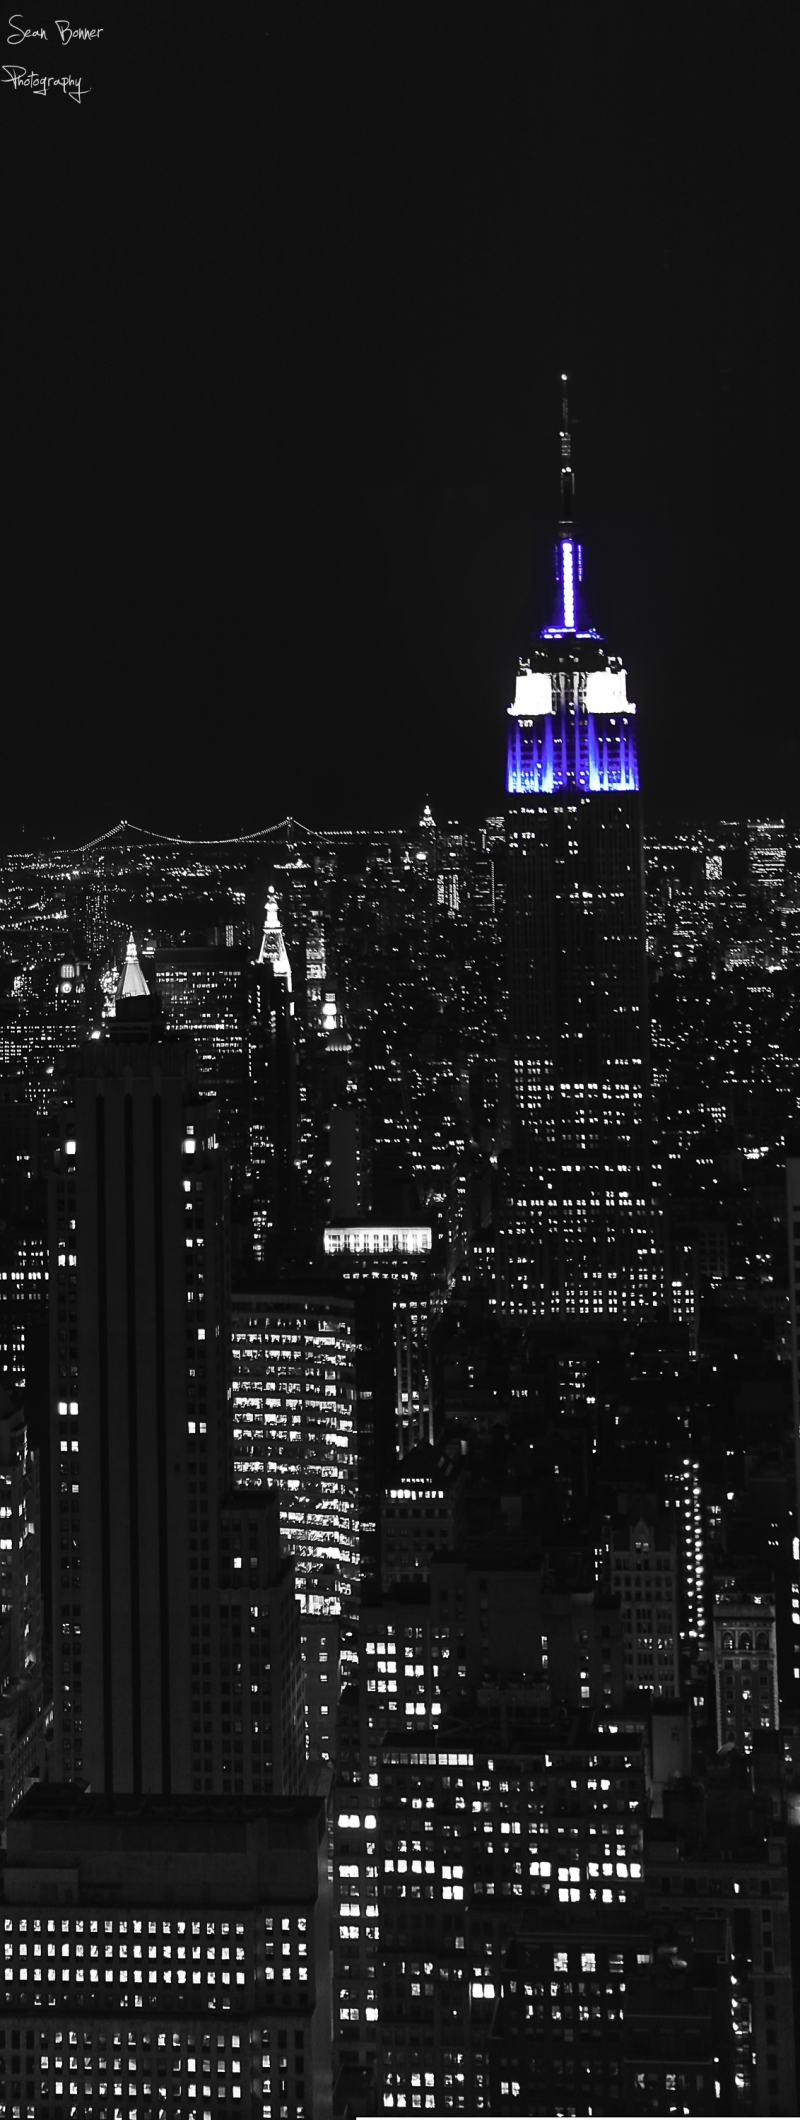 New York City by night including the empire state